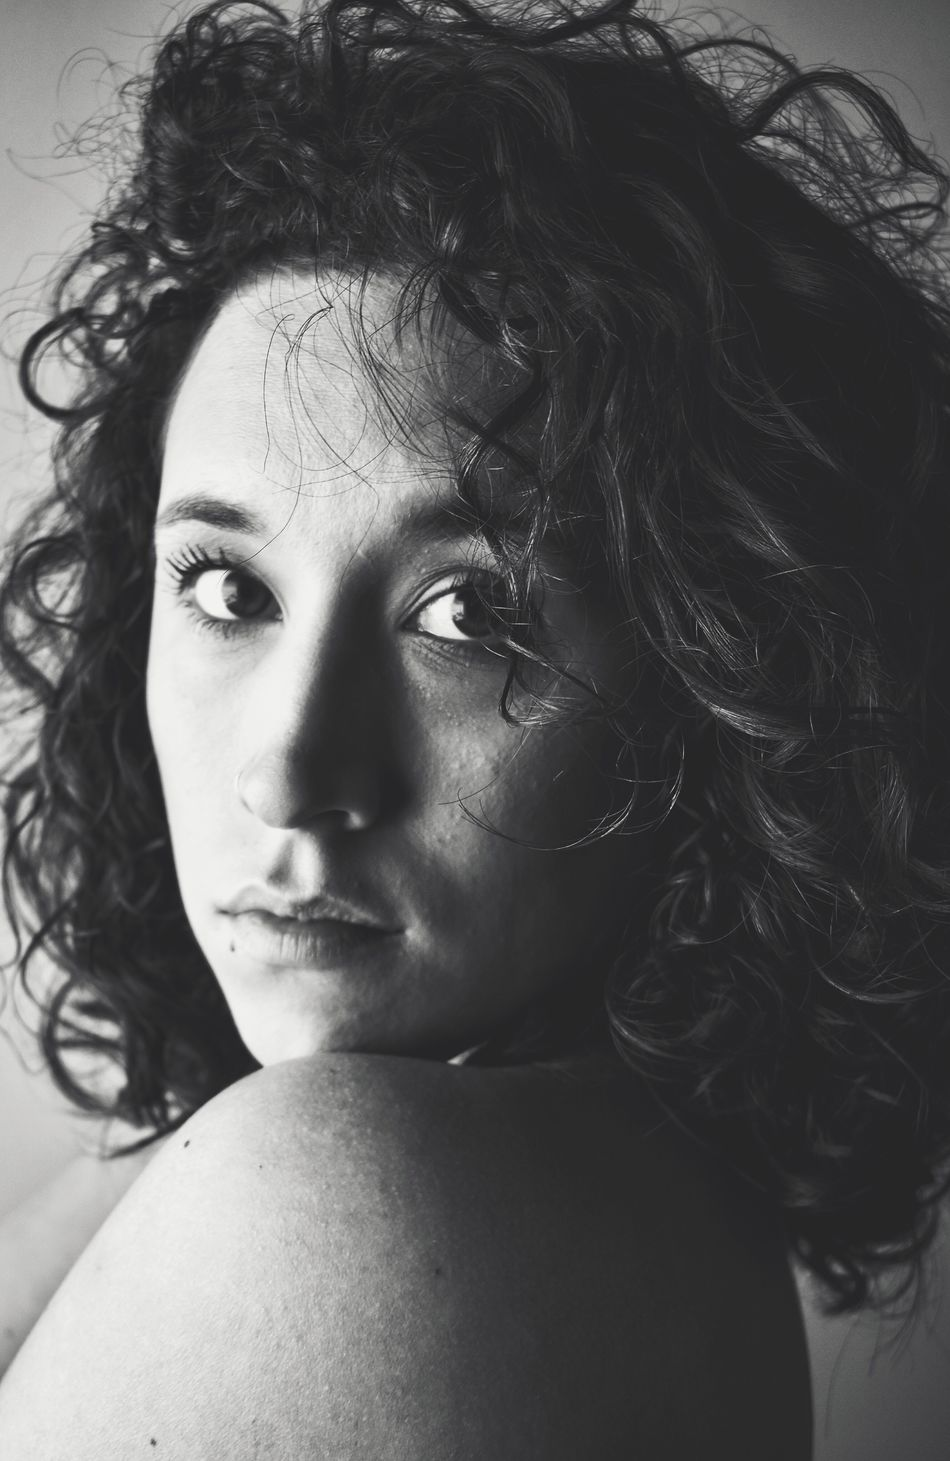 Look at me! Portrait Portrait Of A Woman Real People Close-up Looking At Camera Curly Hair Fragility Lookatme Miradas Memories Photoproject Blackandwhite Photography Black And White Portrait Myproject